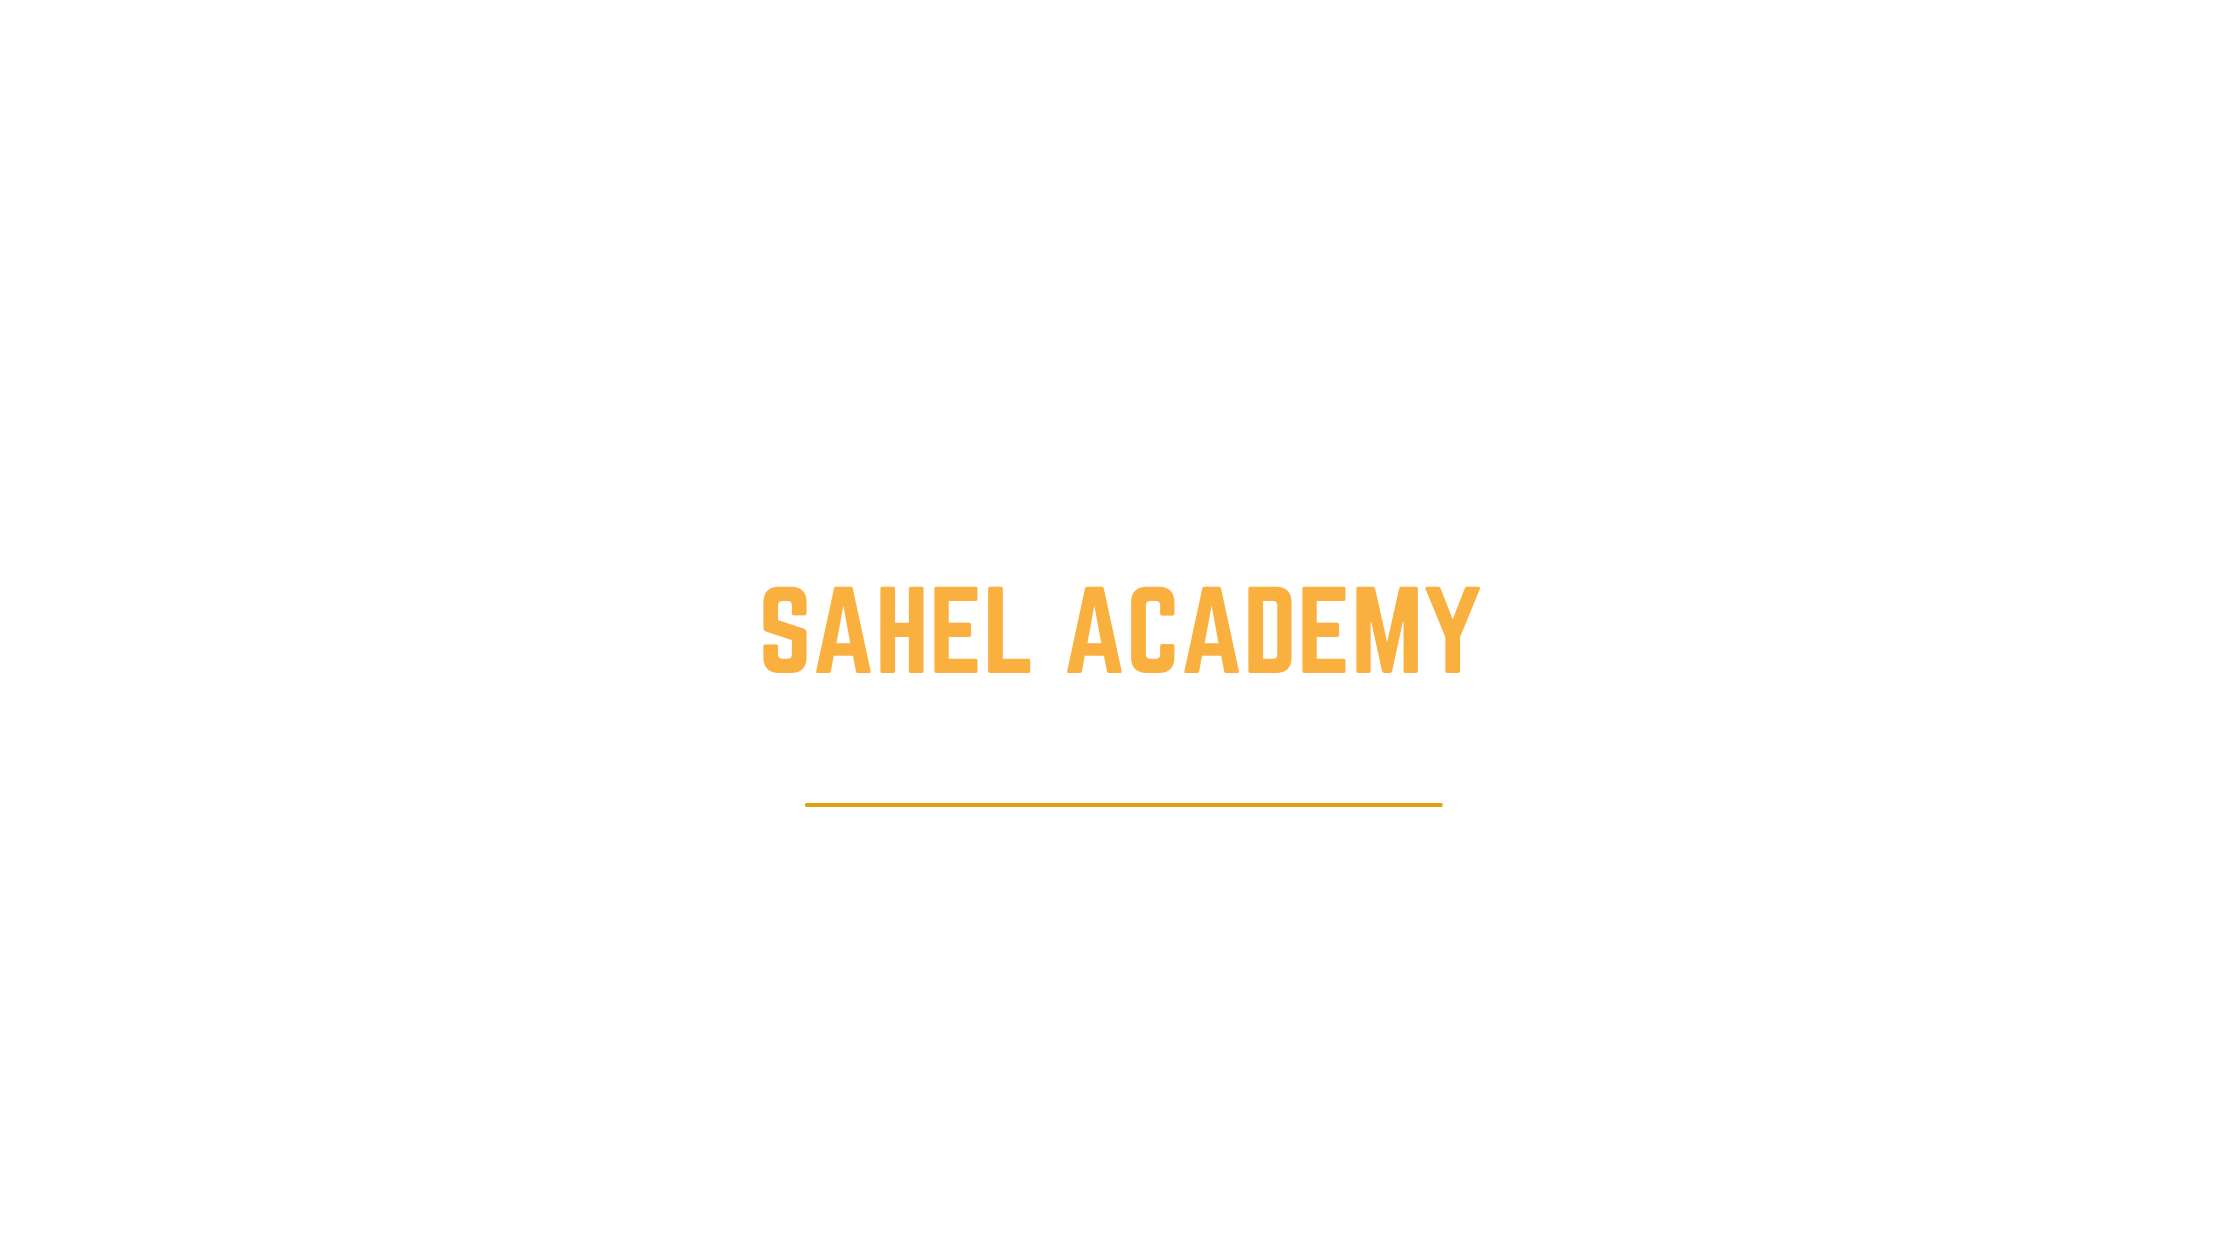 Project RELOCATE SAHEL ACADEMY (4)